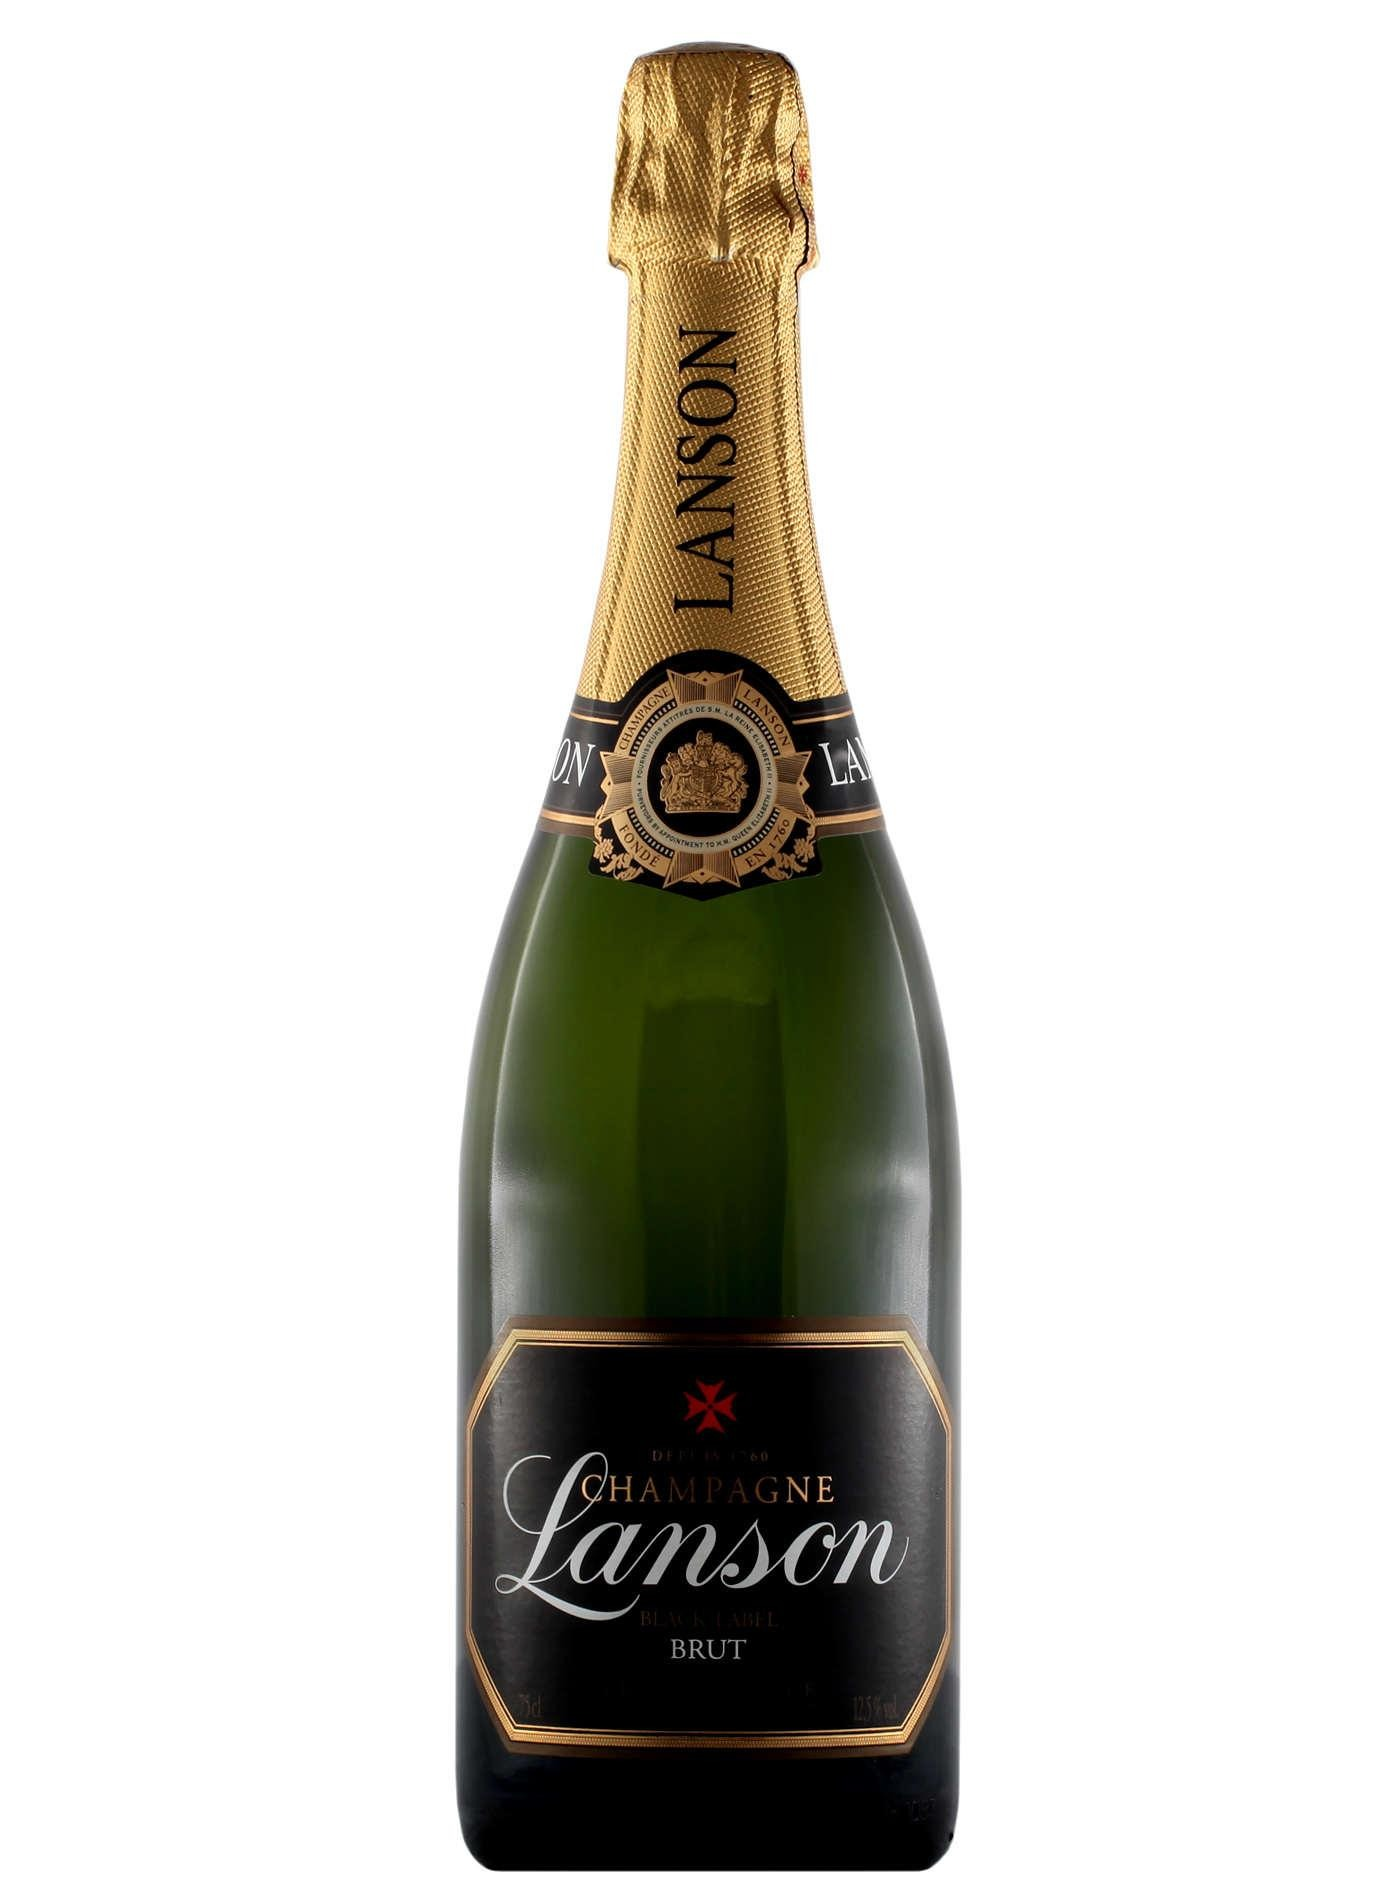 LANSON BLACK LABEL BRUT CHAMPAGNE 750ml